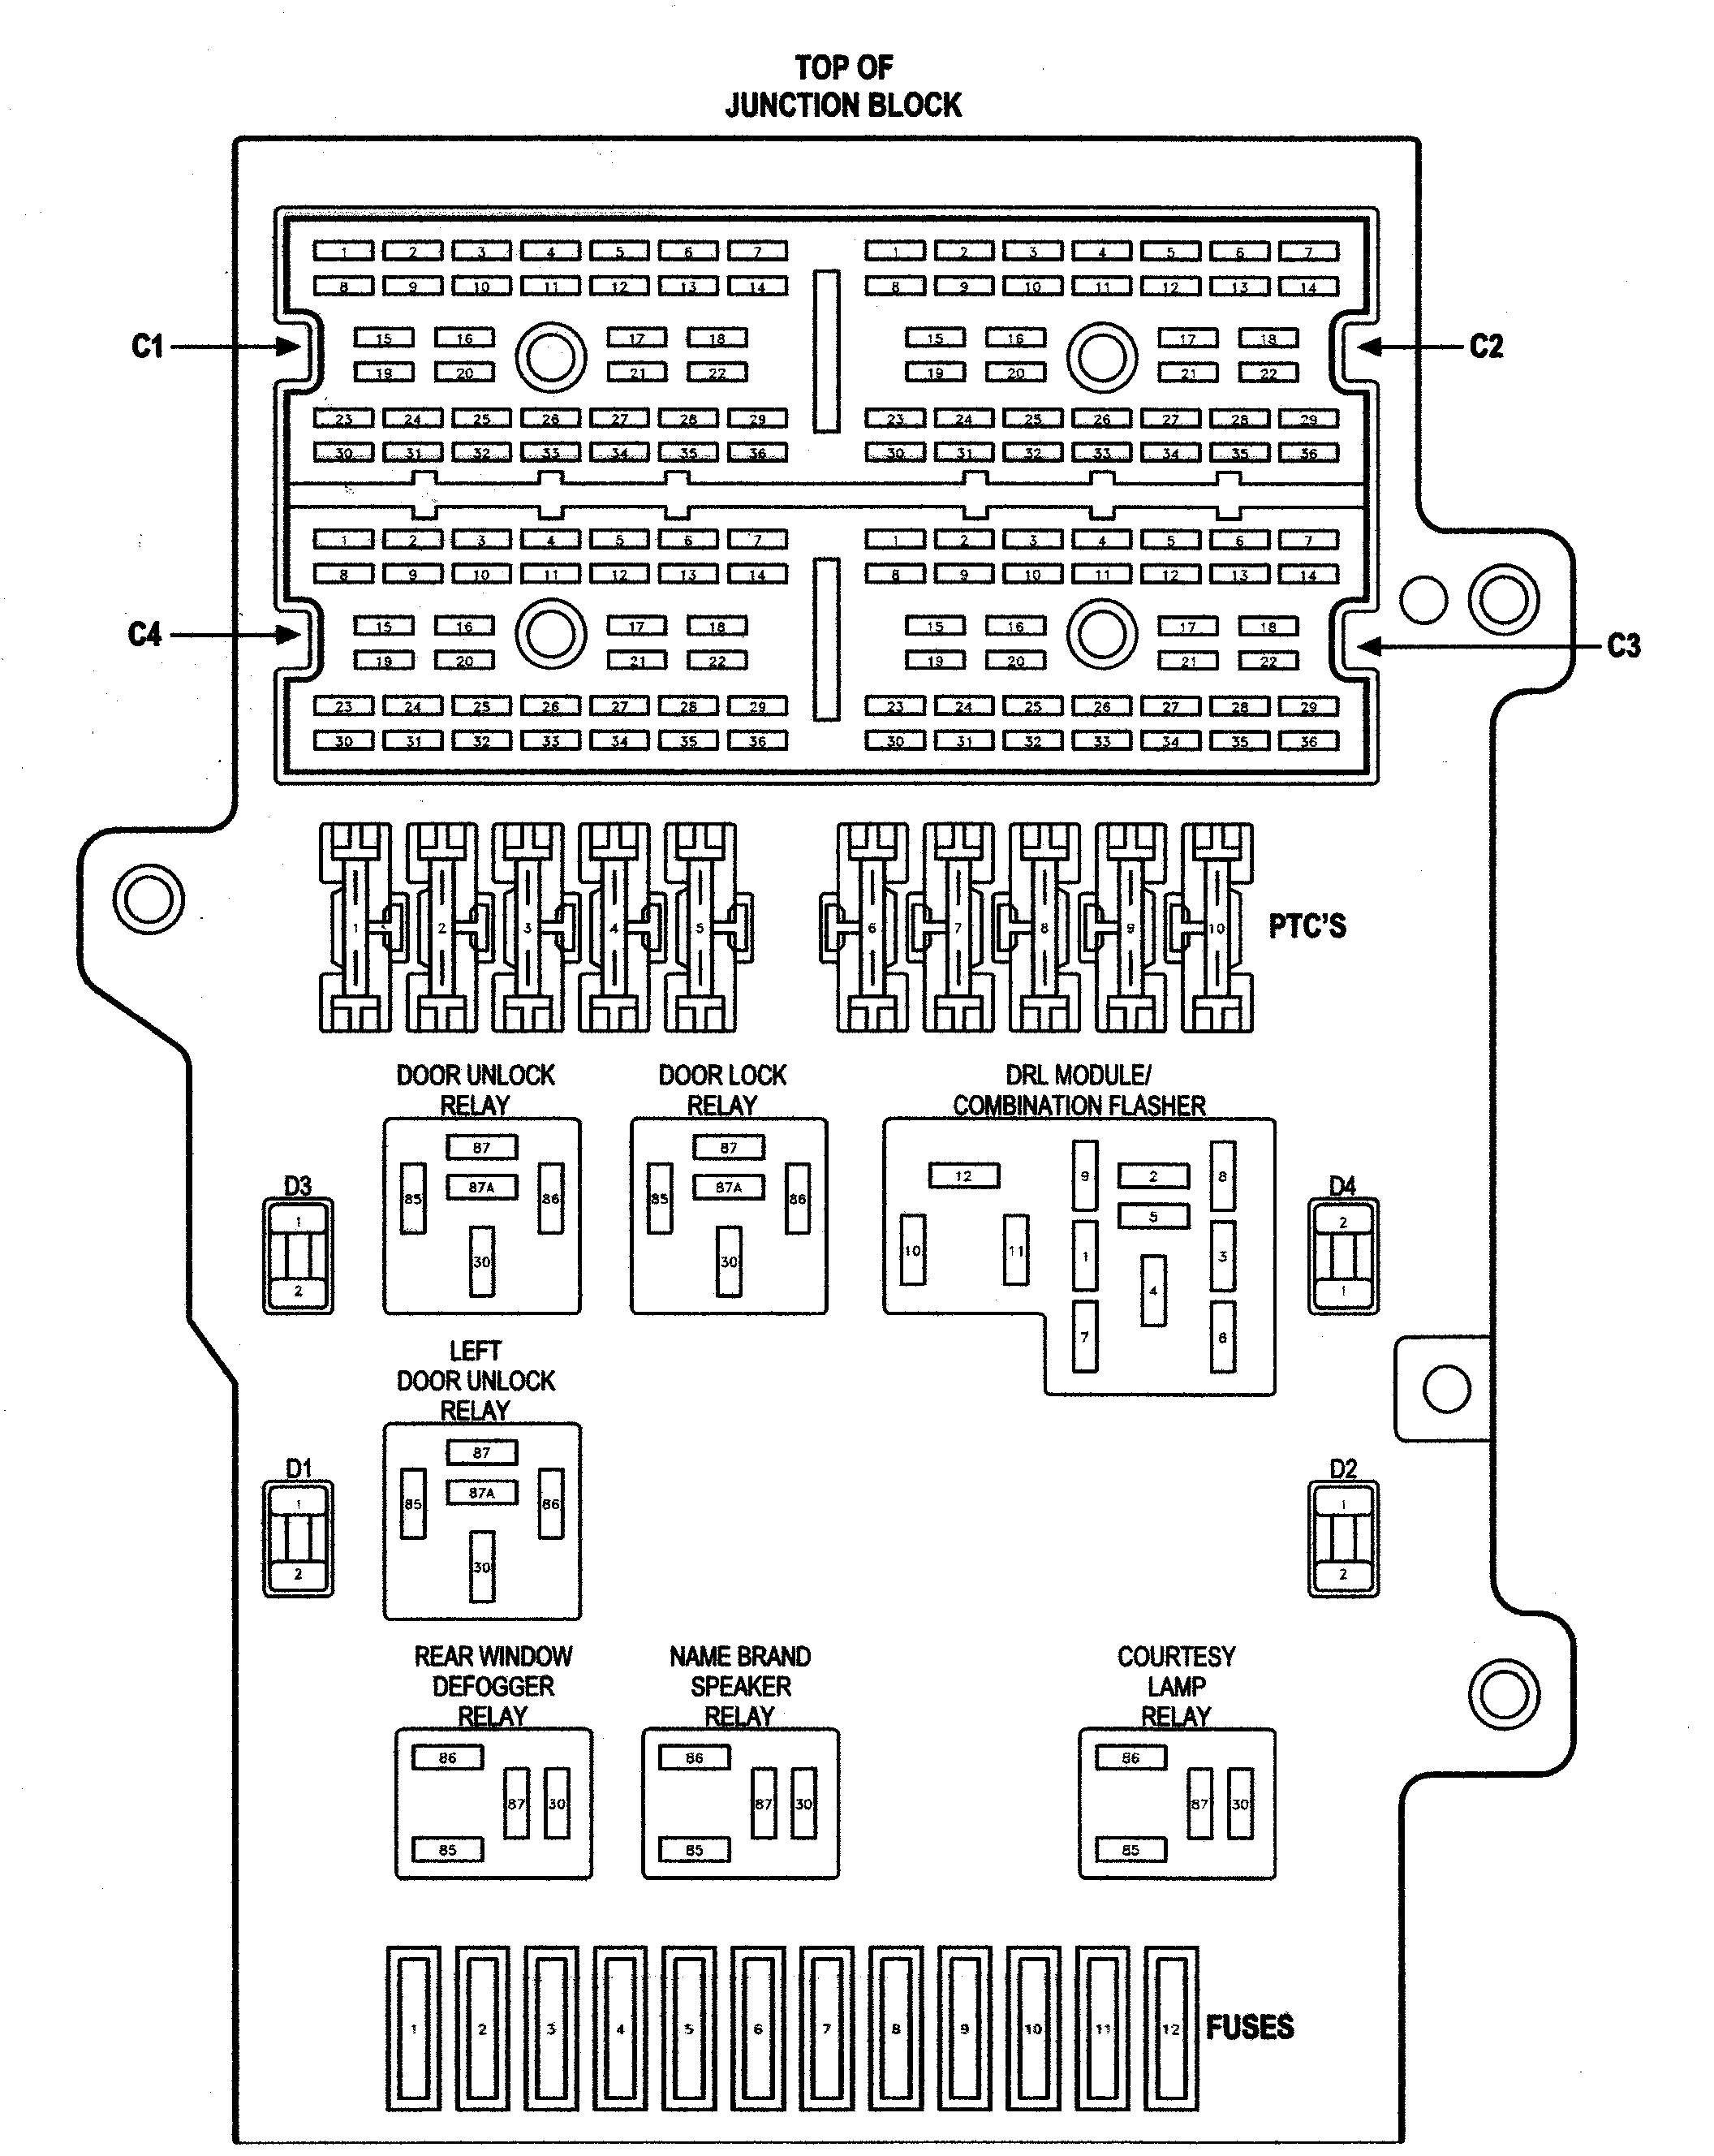 fuse box for 2006 chrysler town and country wiring diagram g9 2006 chrysler  town & country